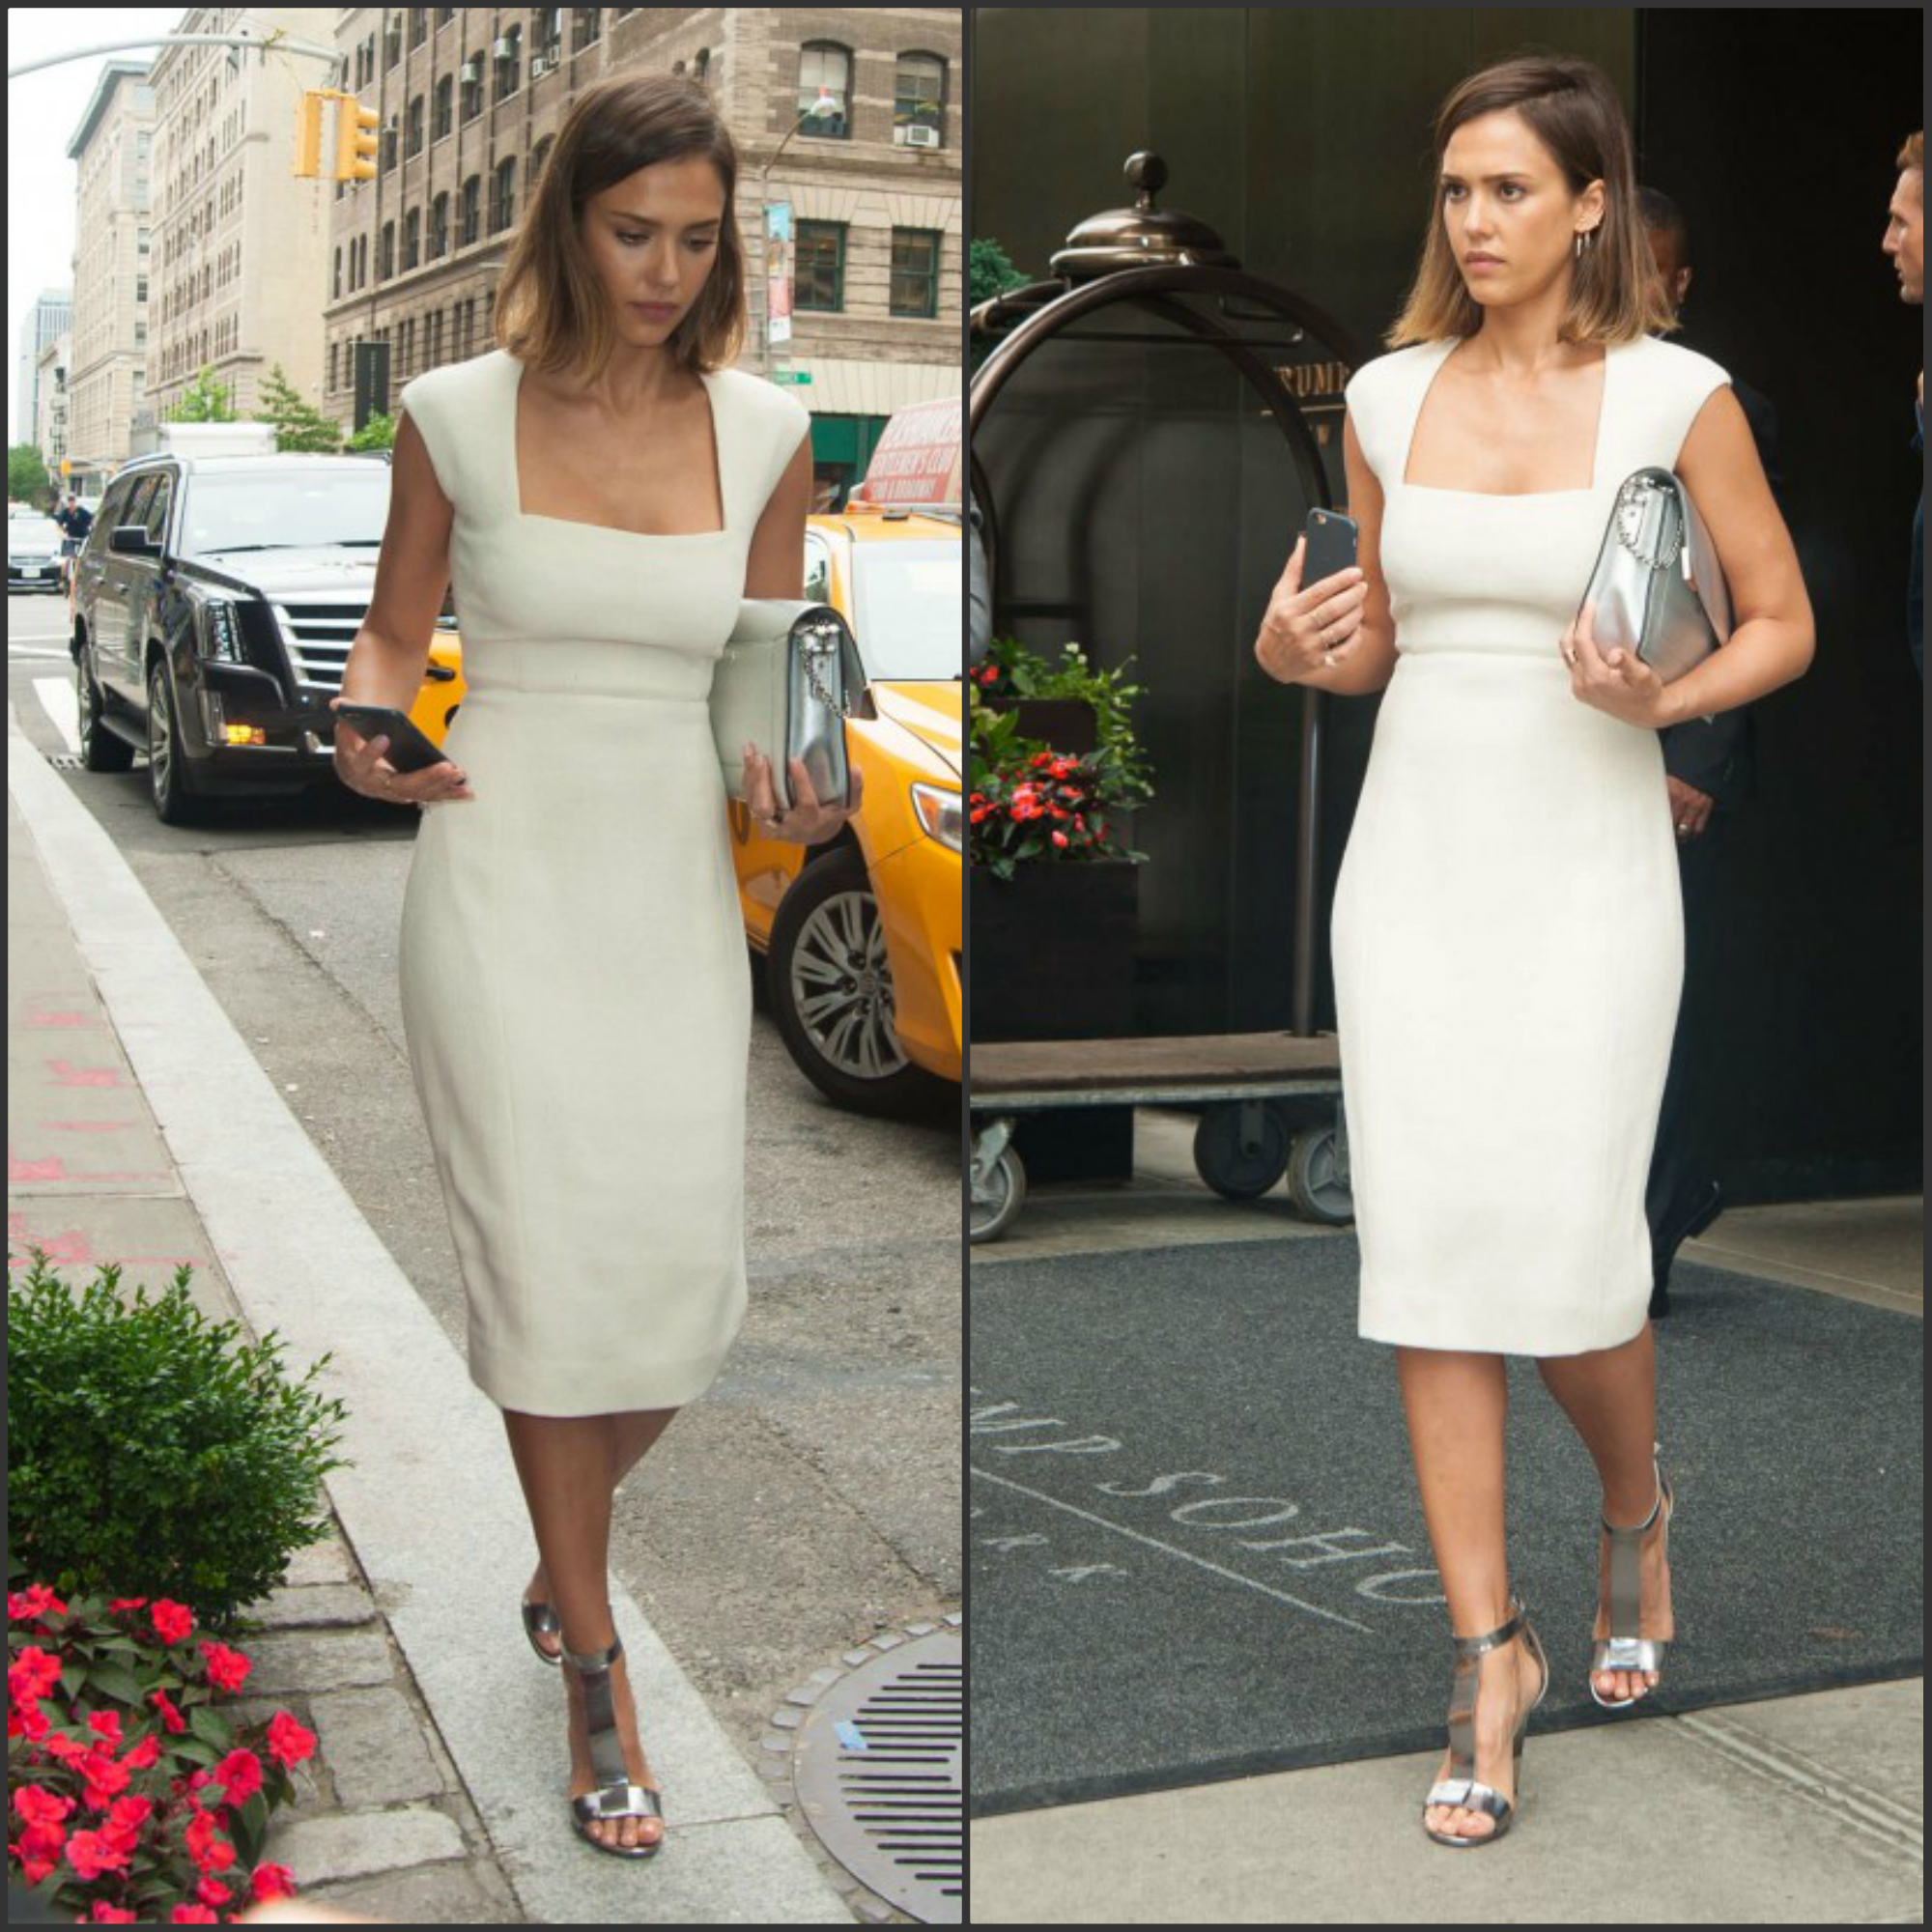 jessica-alba-in-narciso-rodriquez-out-in-new-york-city